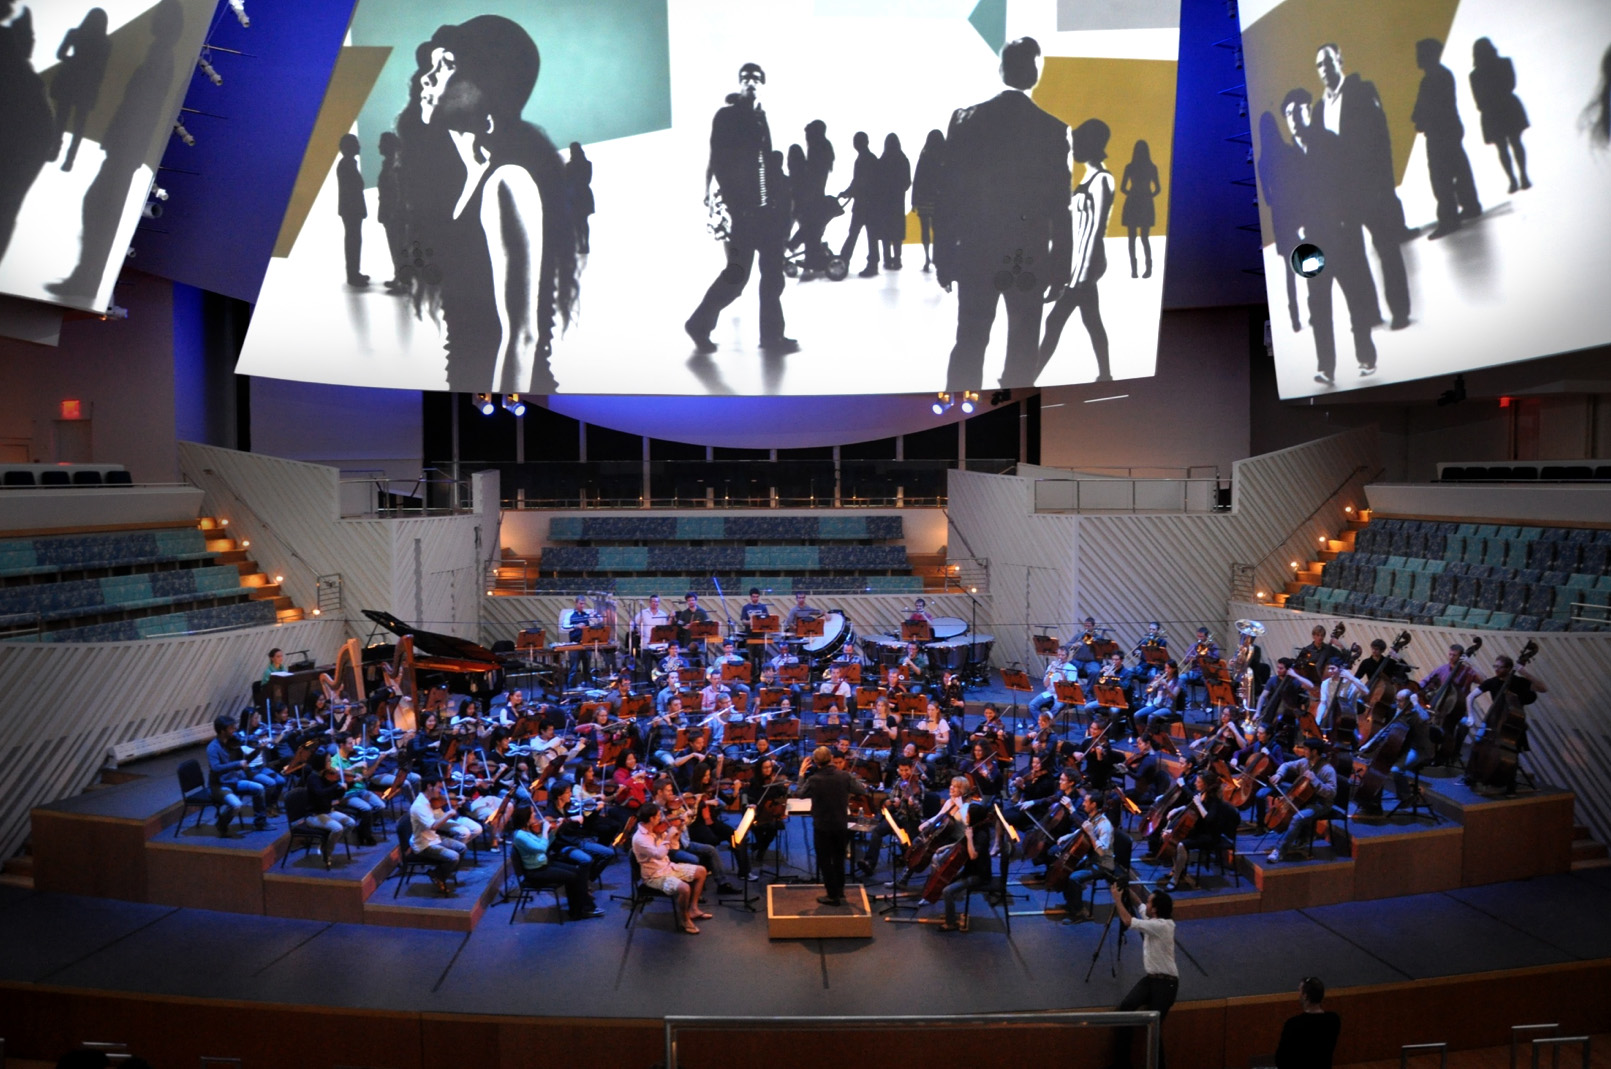 RehearsingwiththeOrchestra_09